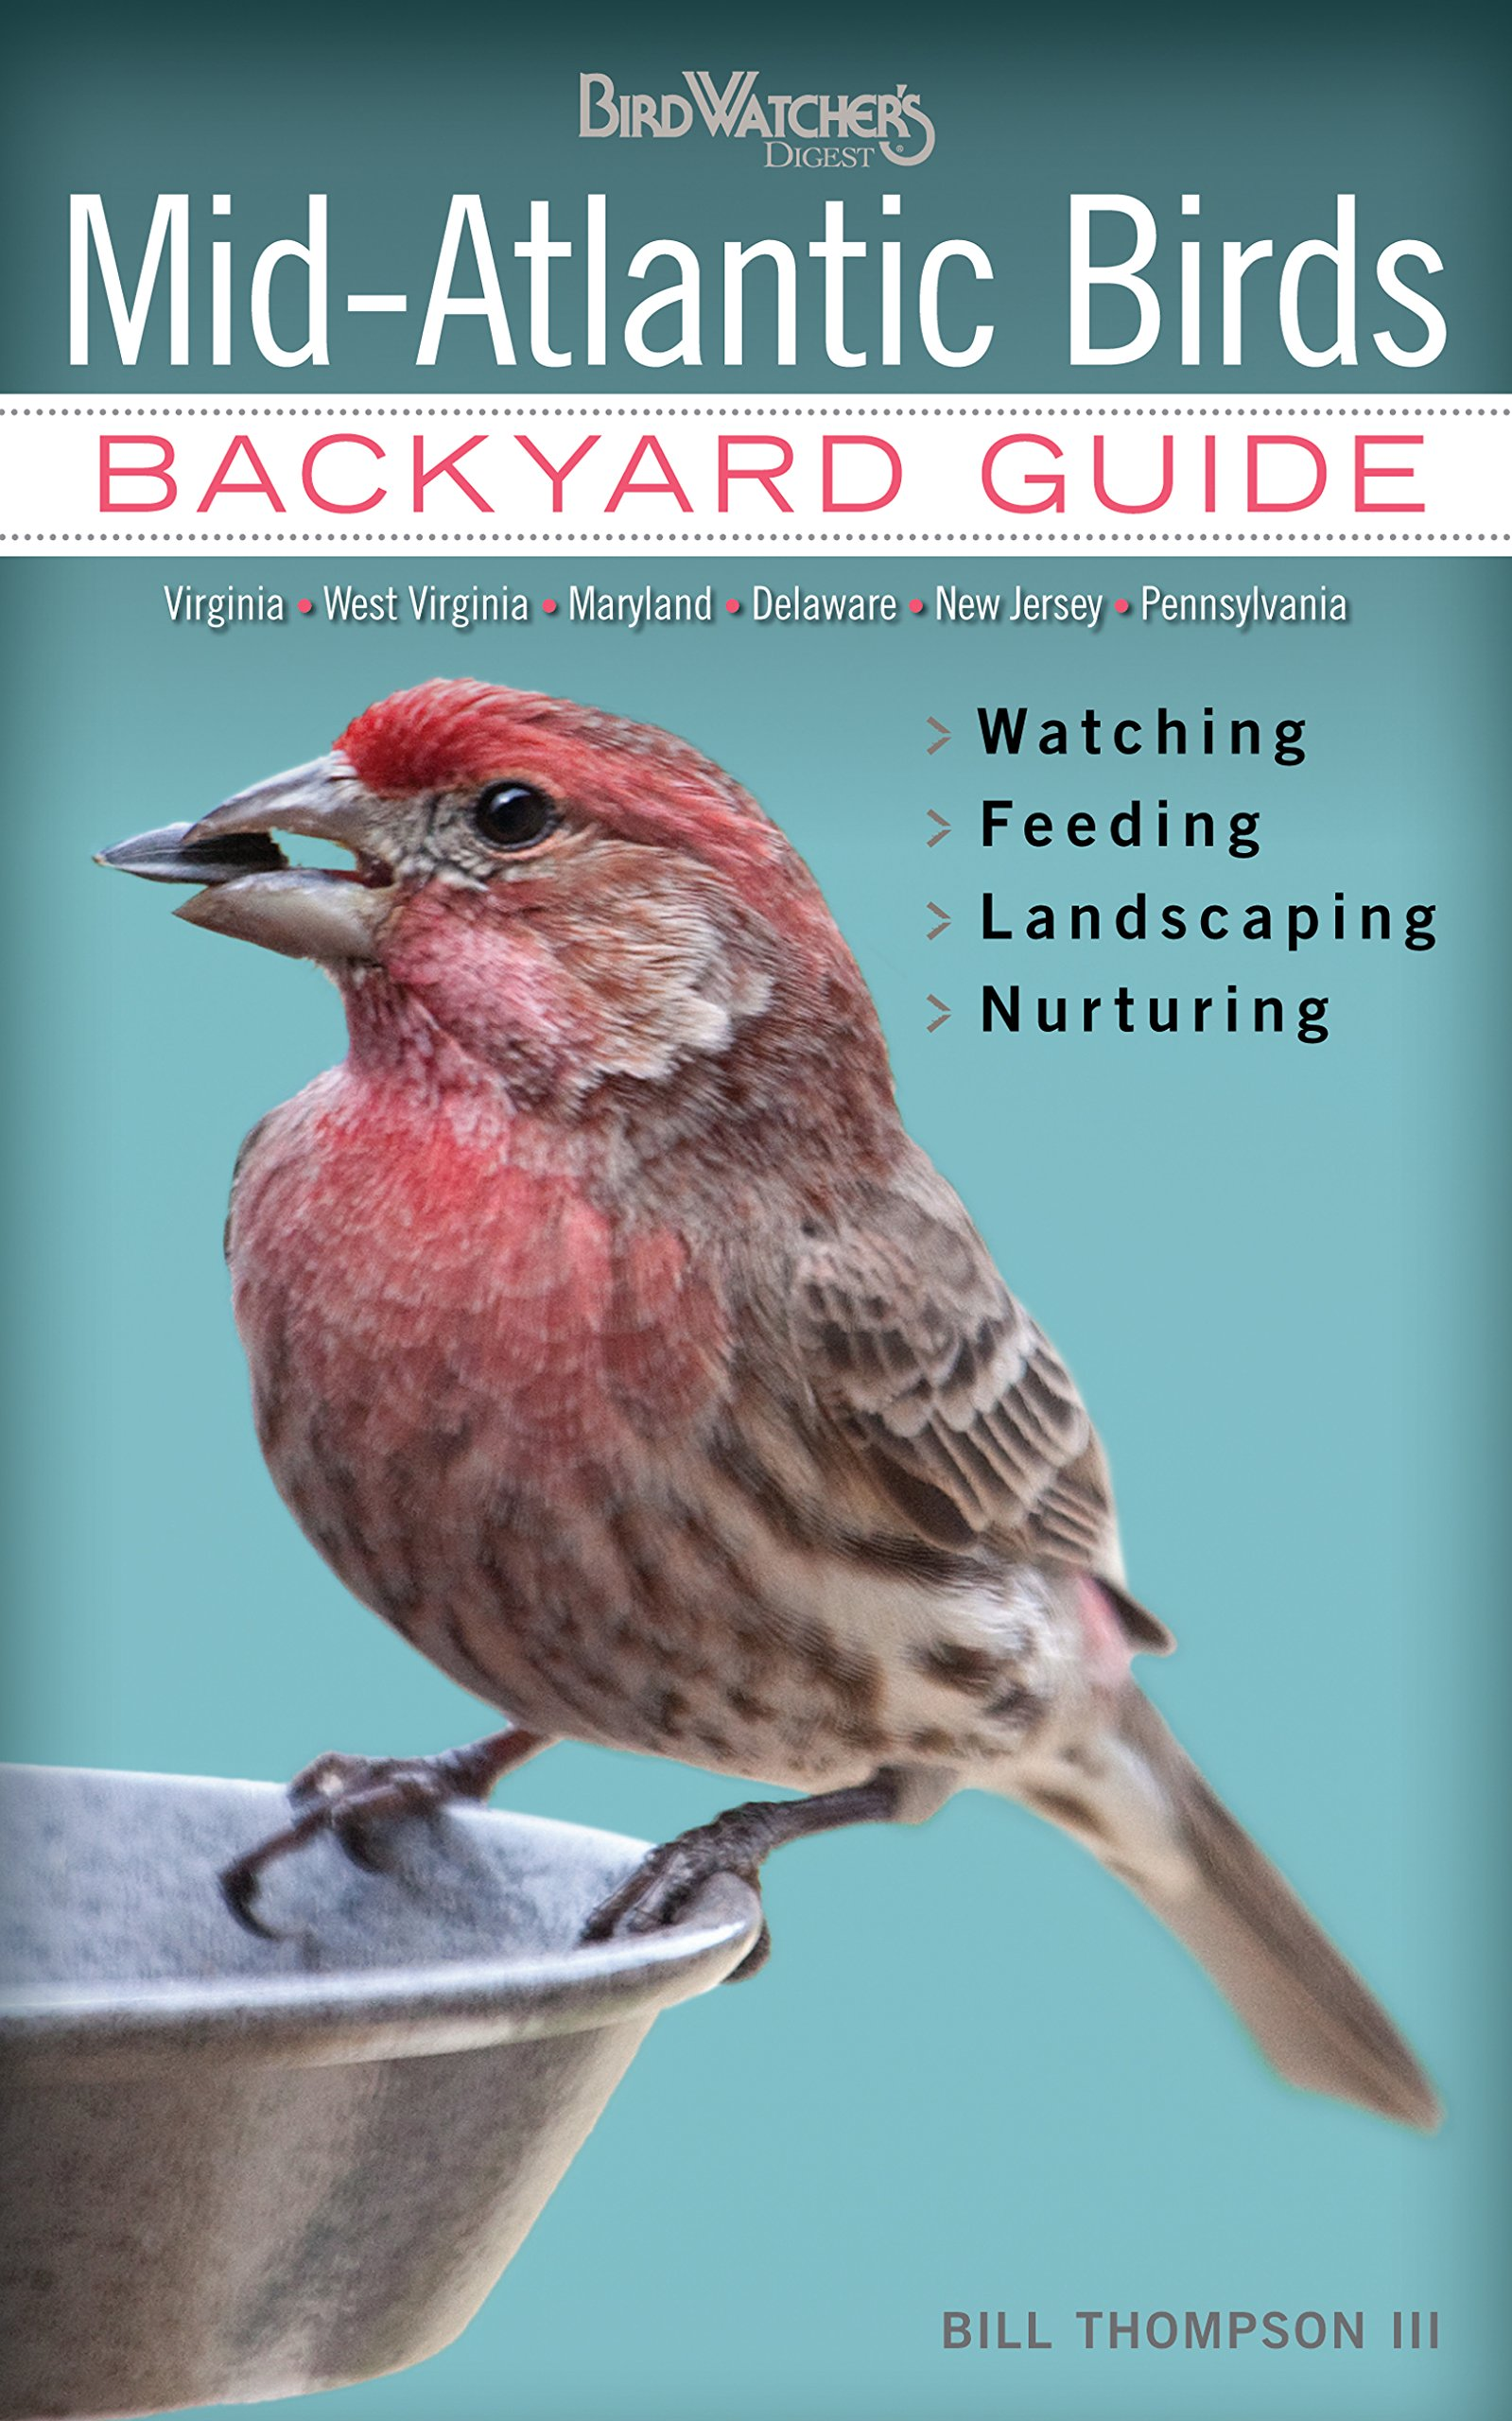 Mid-Atlantic Birds: Backyard Guide - Watching - Feeding - Landscaping - Nurturing - Virginia, West Virginia, Maryland, Delaware, New Jersey, Pennsylvania (Bird Watcher's Digest Backyard Guide) PDF ePub book